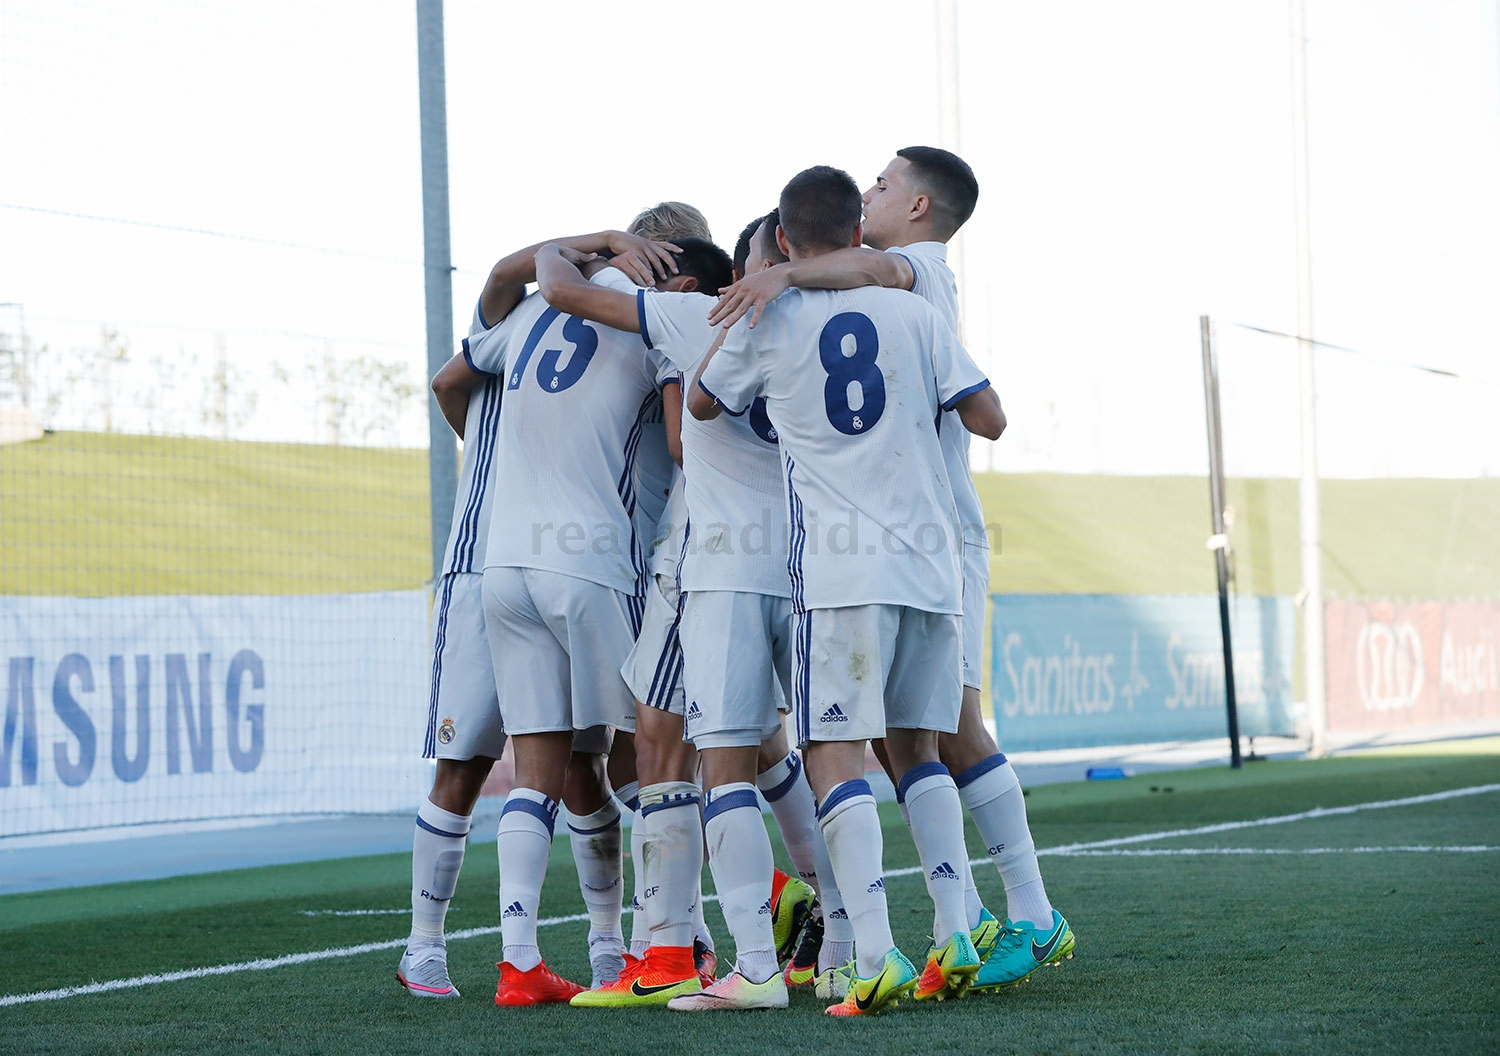 Real Madrid - Real Madrid Castilla - Leioa - 18-09-2016